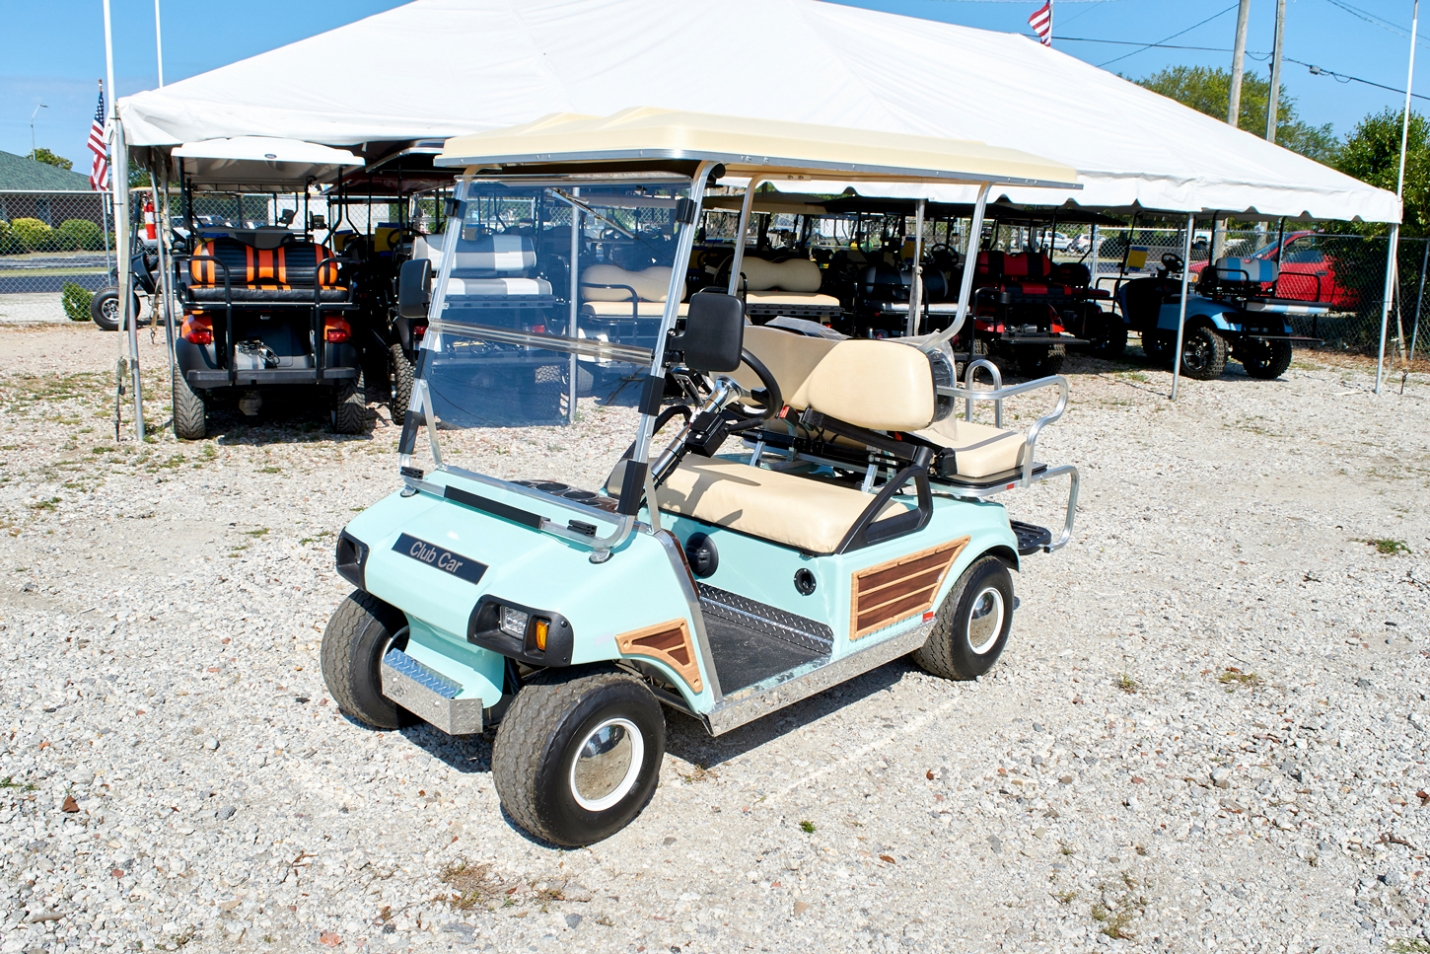 SunFun is Offering Golf Cart Sales and Customization